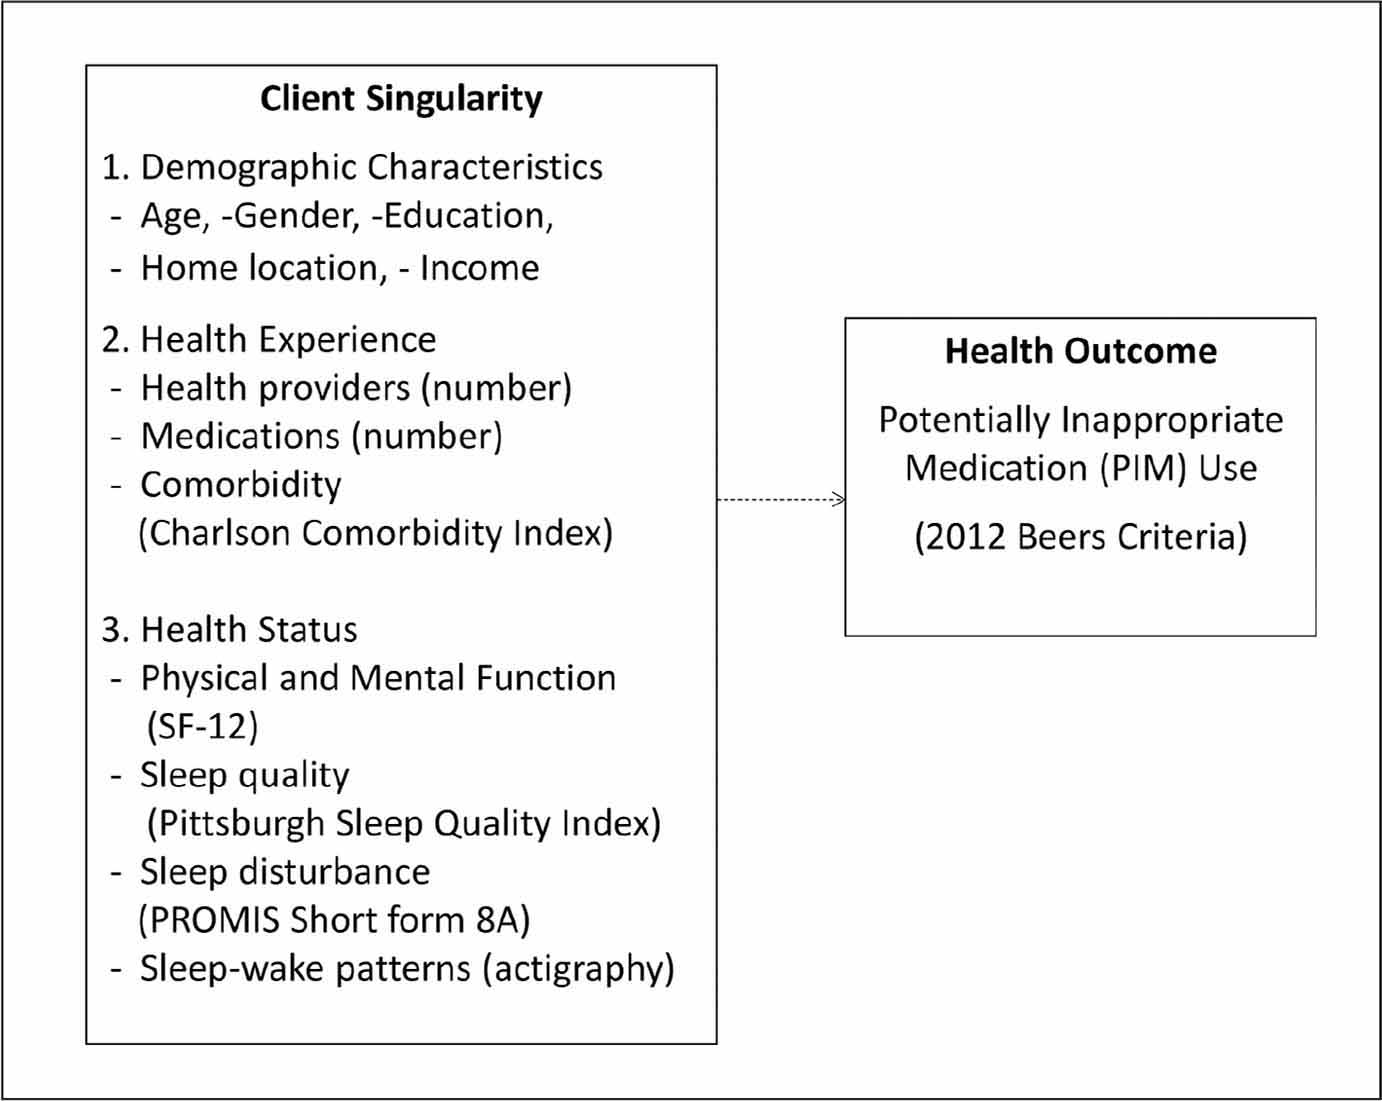 Research model of factors associated with potentially inappropriate medication use in community-dwelling older adults, adapted from Cox's (1982) Interaction Model of Client Health Behavior.Note. PROMIS = Patient-Reported Outcomes Measurement Information System.